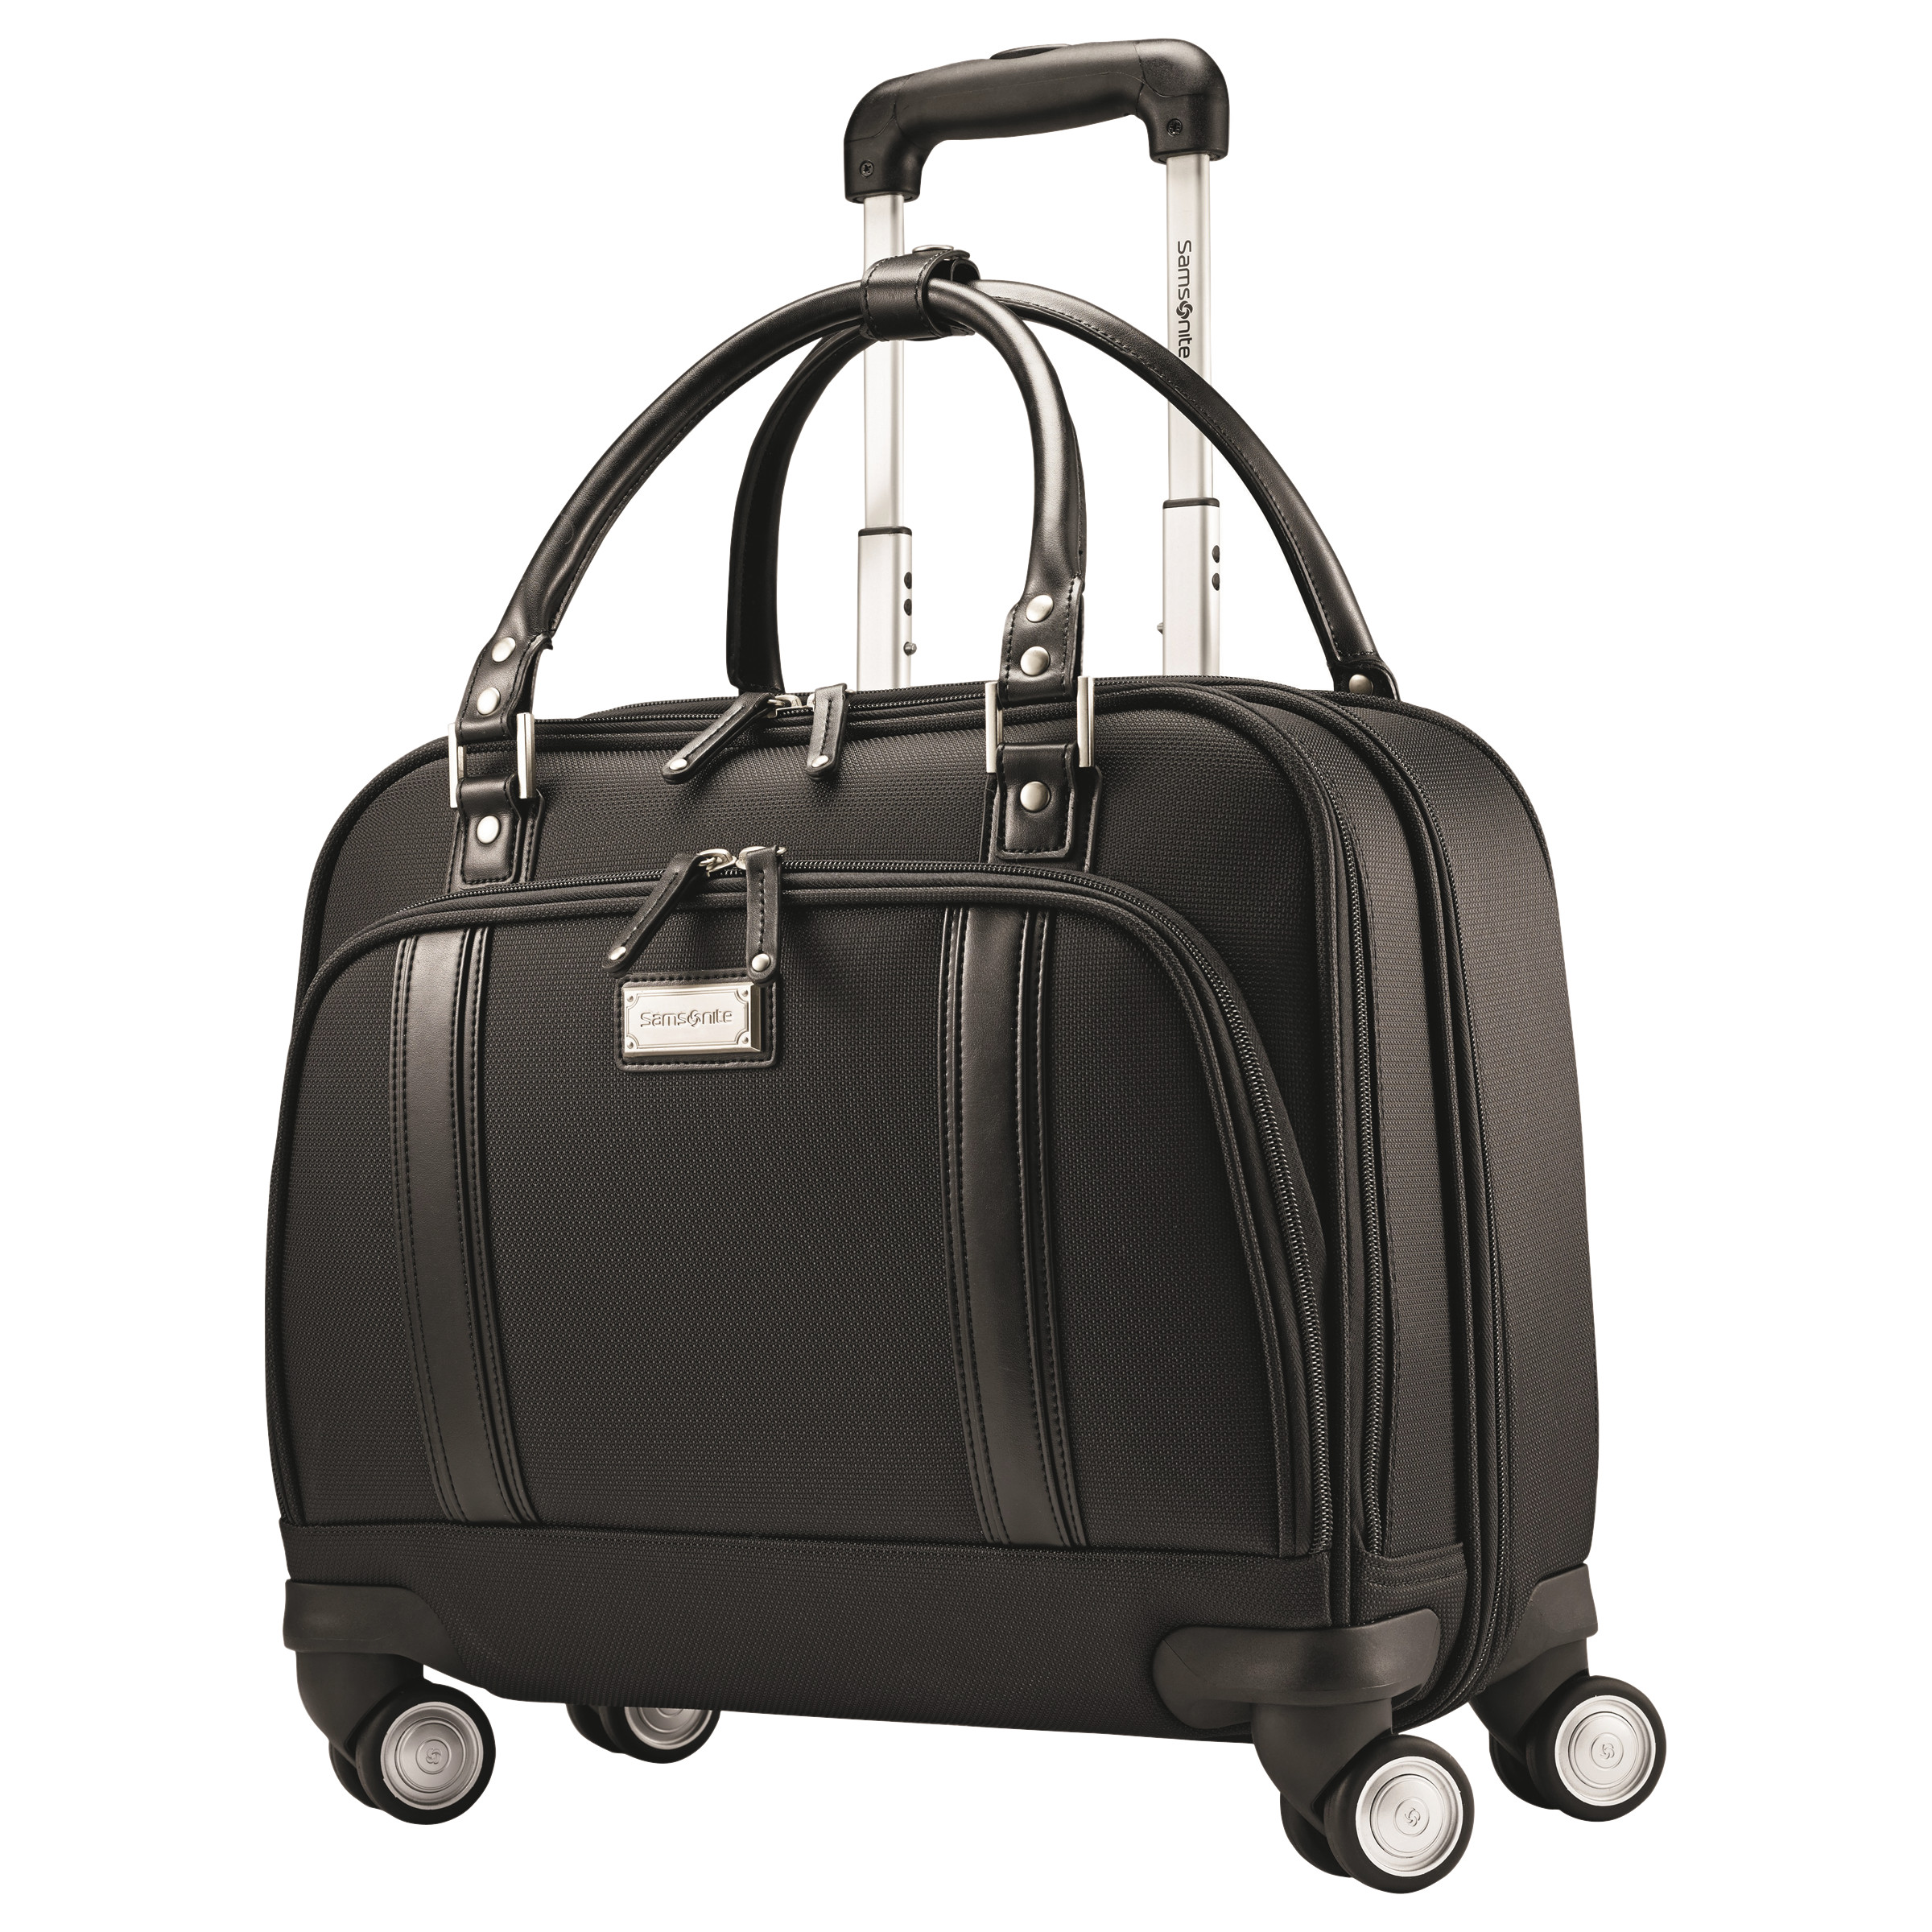 Samsonite Women's Rolling Mobile Office, 16 1 2 x 8 x 13 1 2, Black by Samsonite